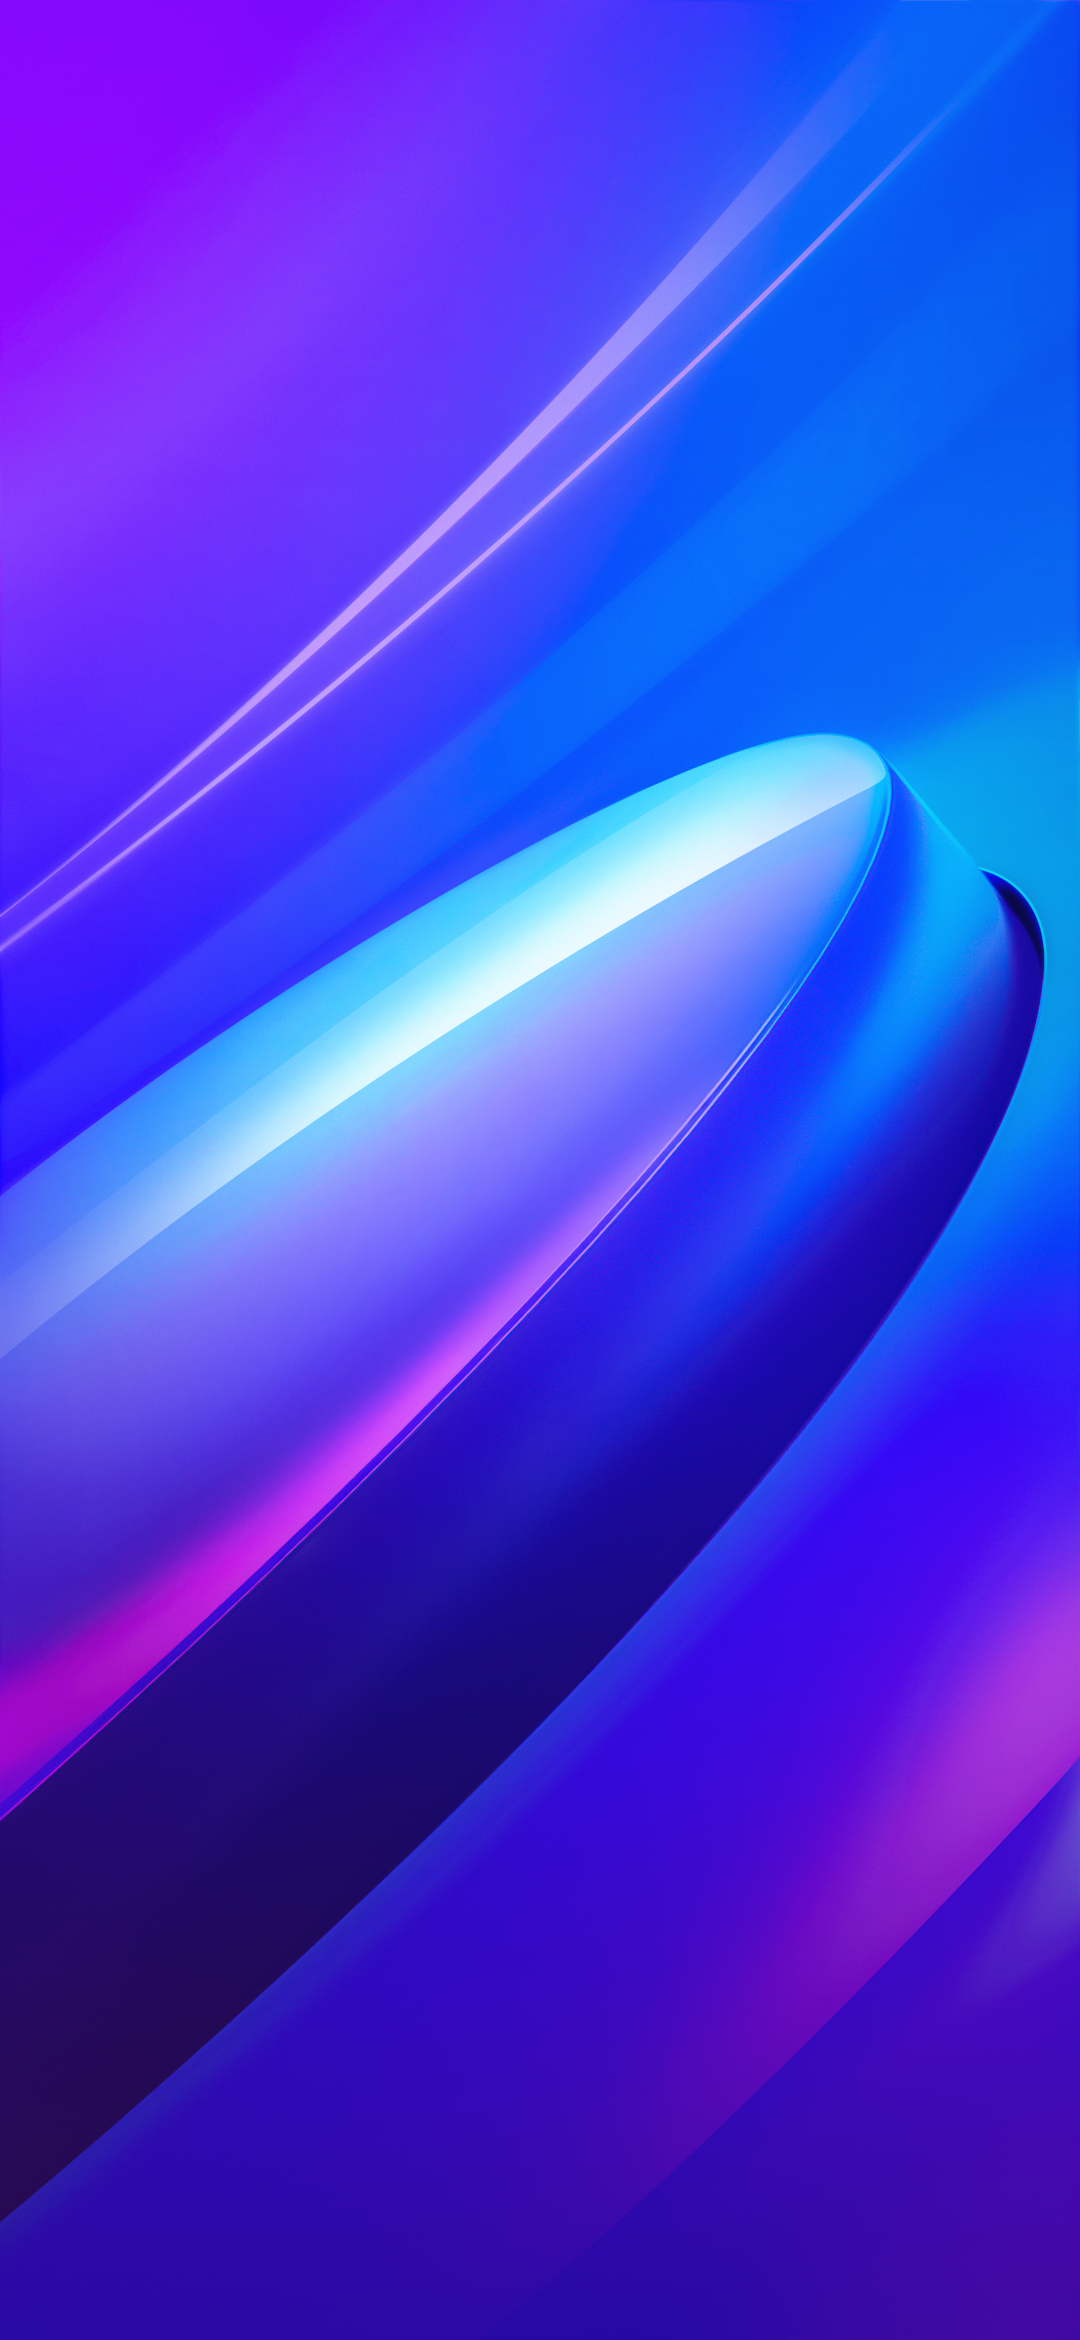 Download Vivo Iqoo Neo Stock Wallpapers Fhd Samsung Wallpaper Mobile Wallpaper Android Phone Background Wallpaper